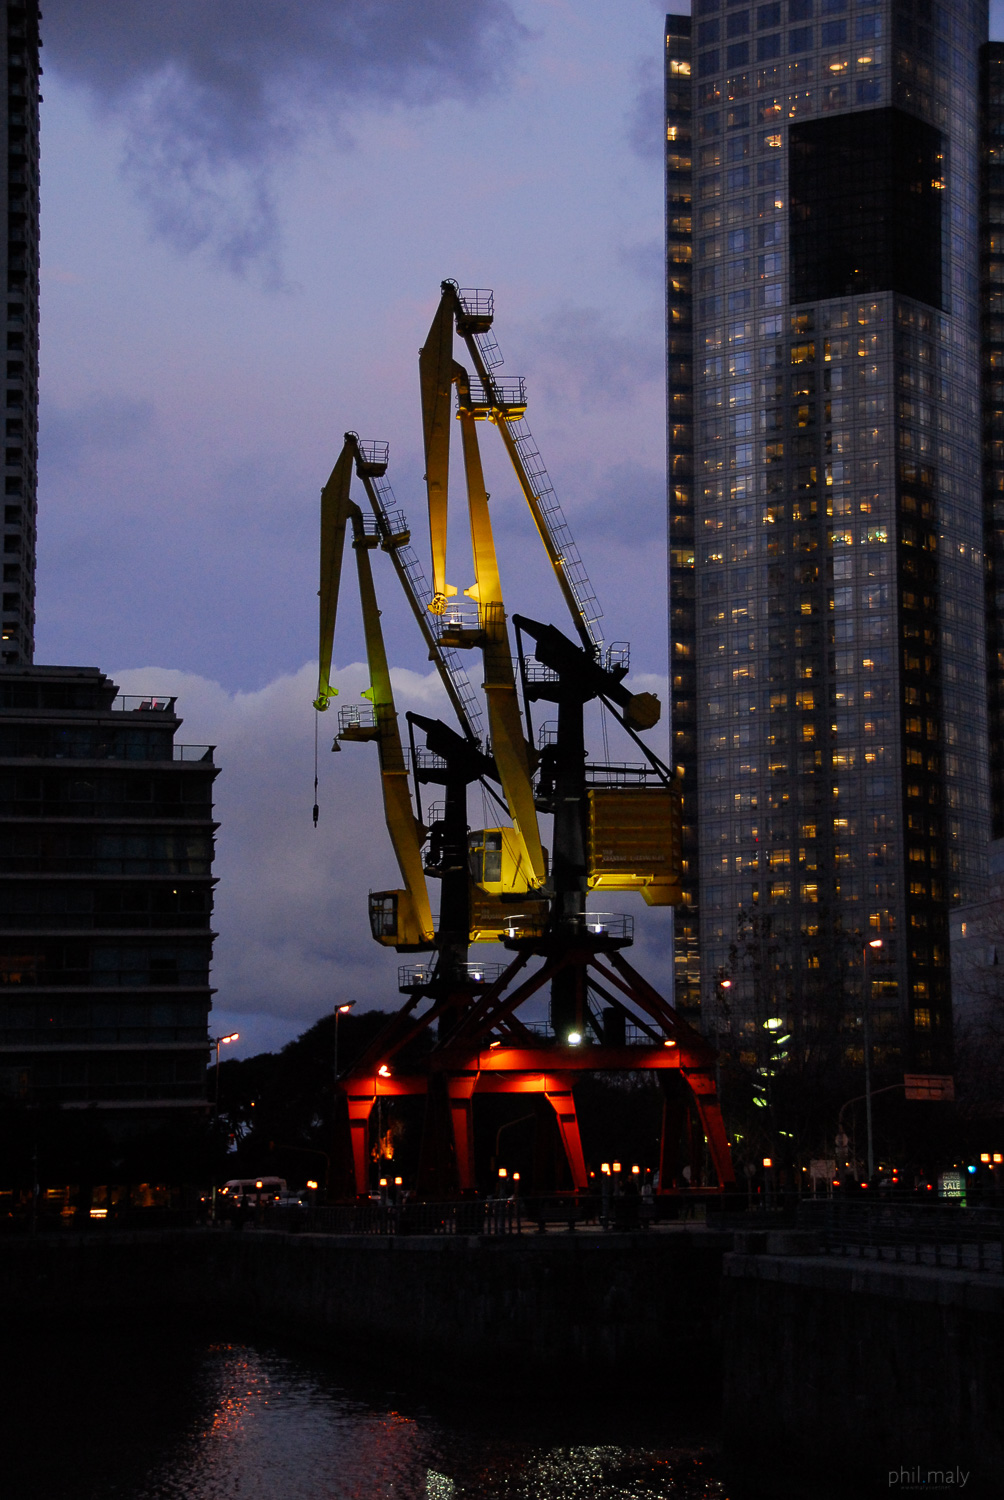 The docks of Puerto Madero in Buenos Aires at night